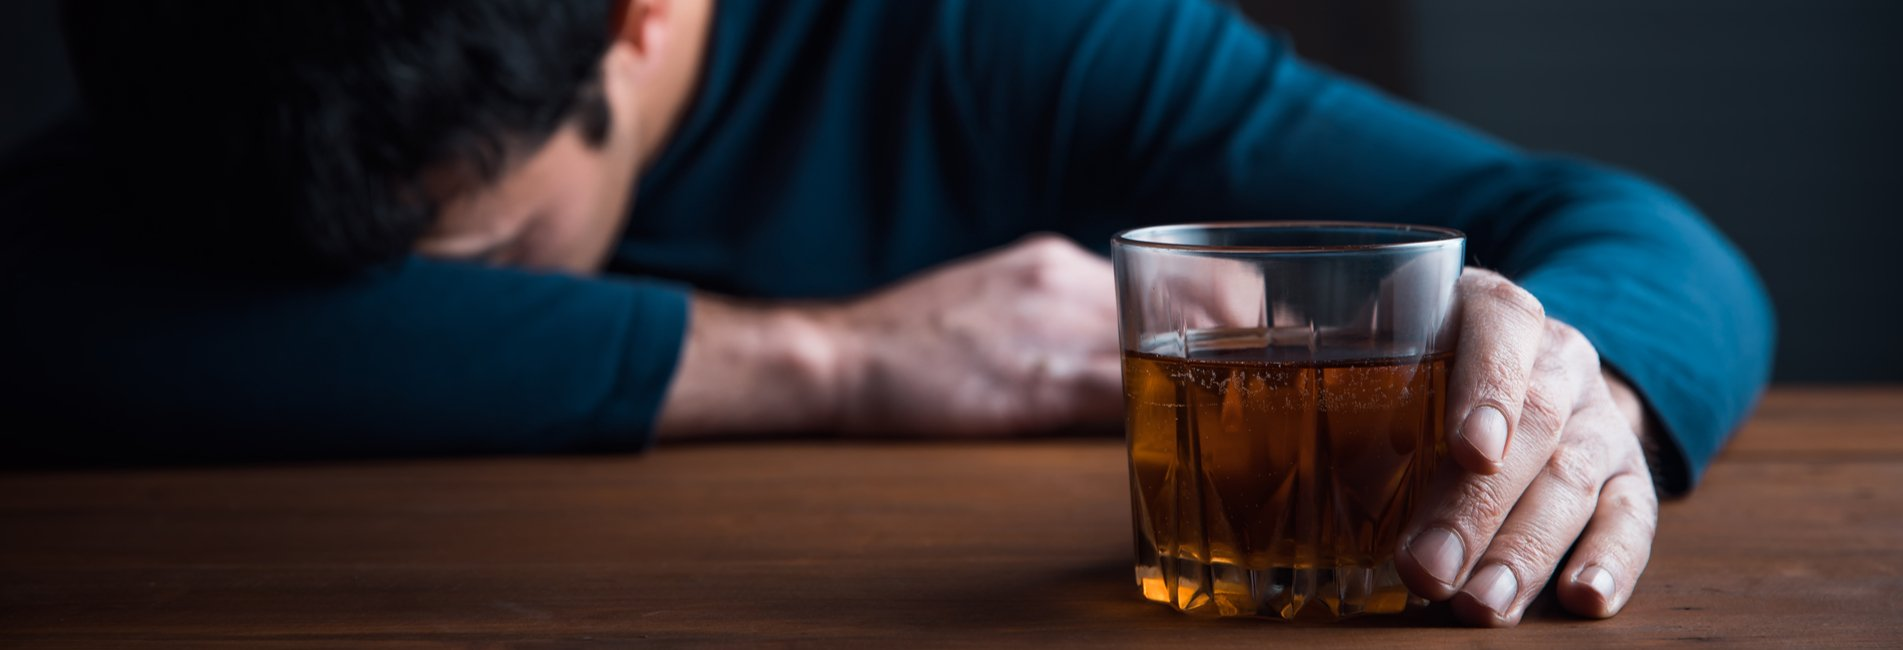 Millennial Addictions Resurgence – A young man struggles with alcohol. There are many things that lead to millennial addictions, but there is help available.